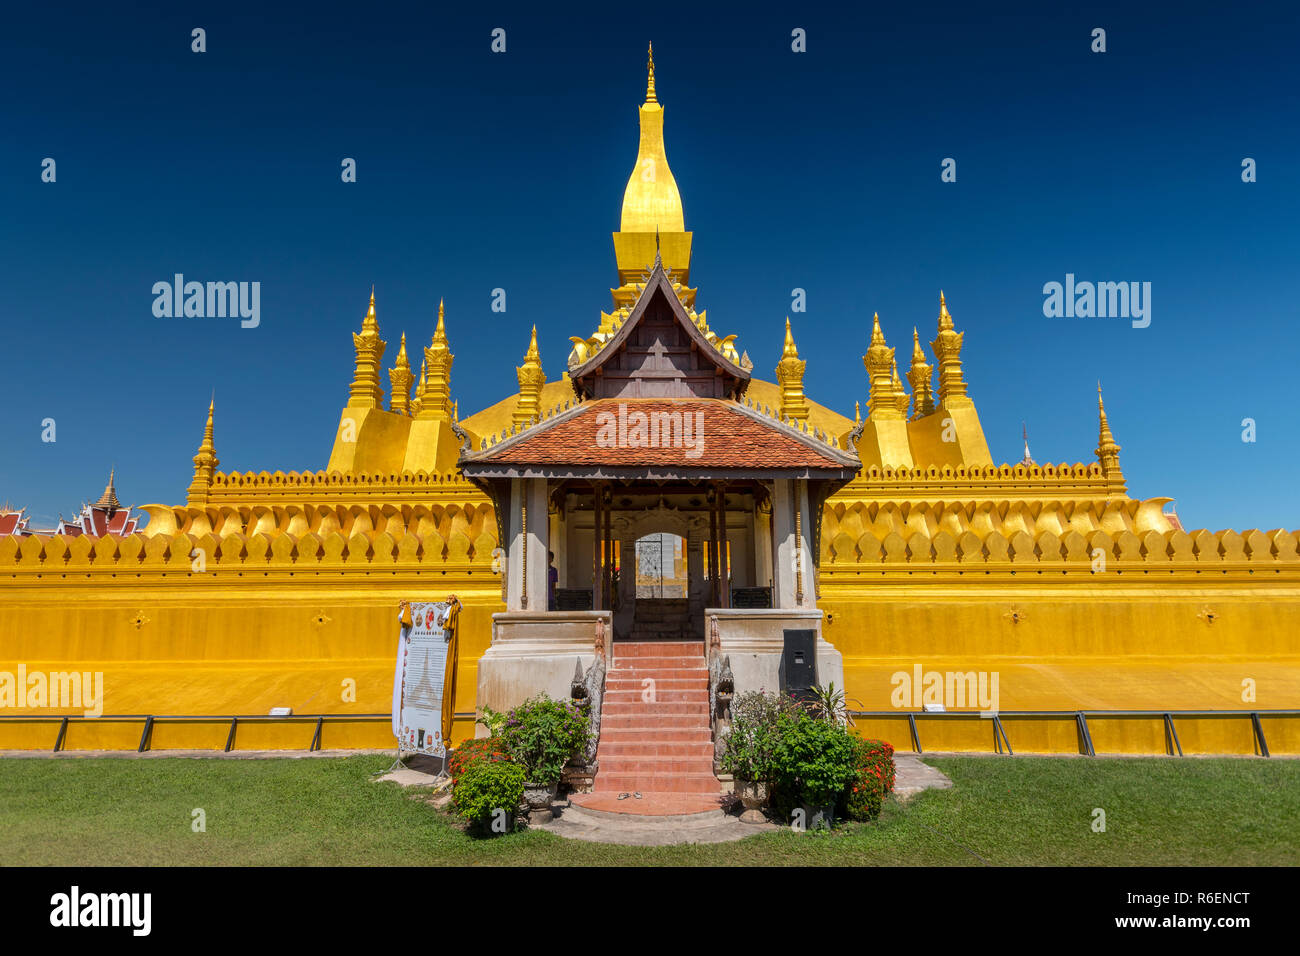 Pha That Luang, Symbol Of The Laos Sovereignty, Buddhist Religion And The City Of Vientiane, Vientiane, Laos - Stock Image